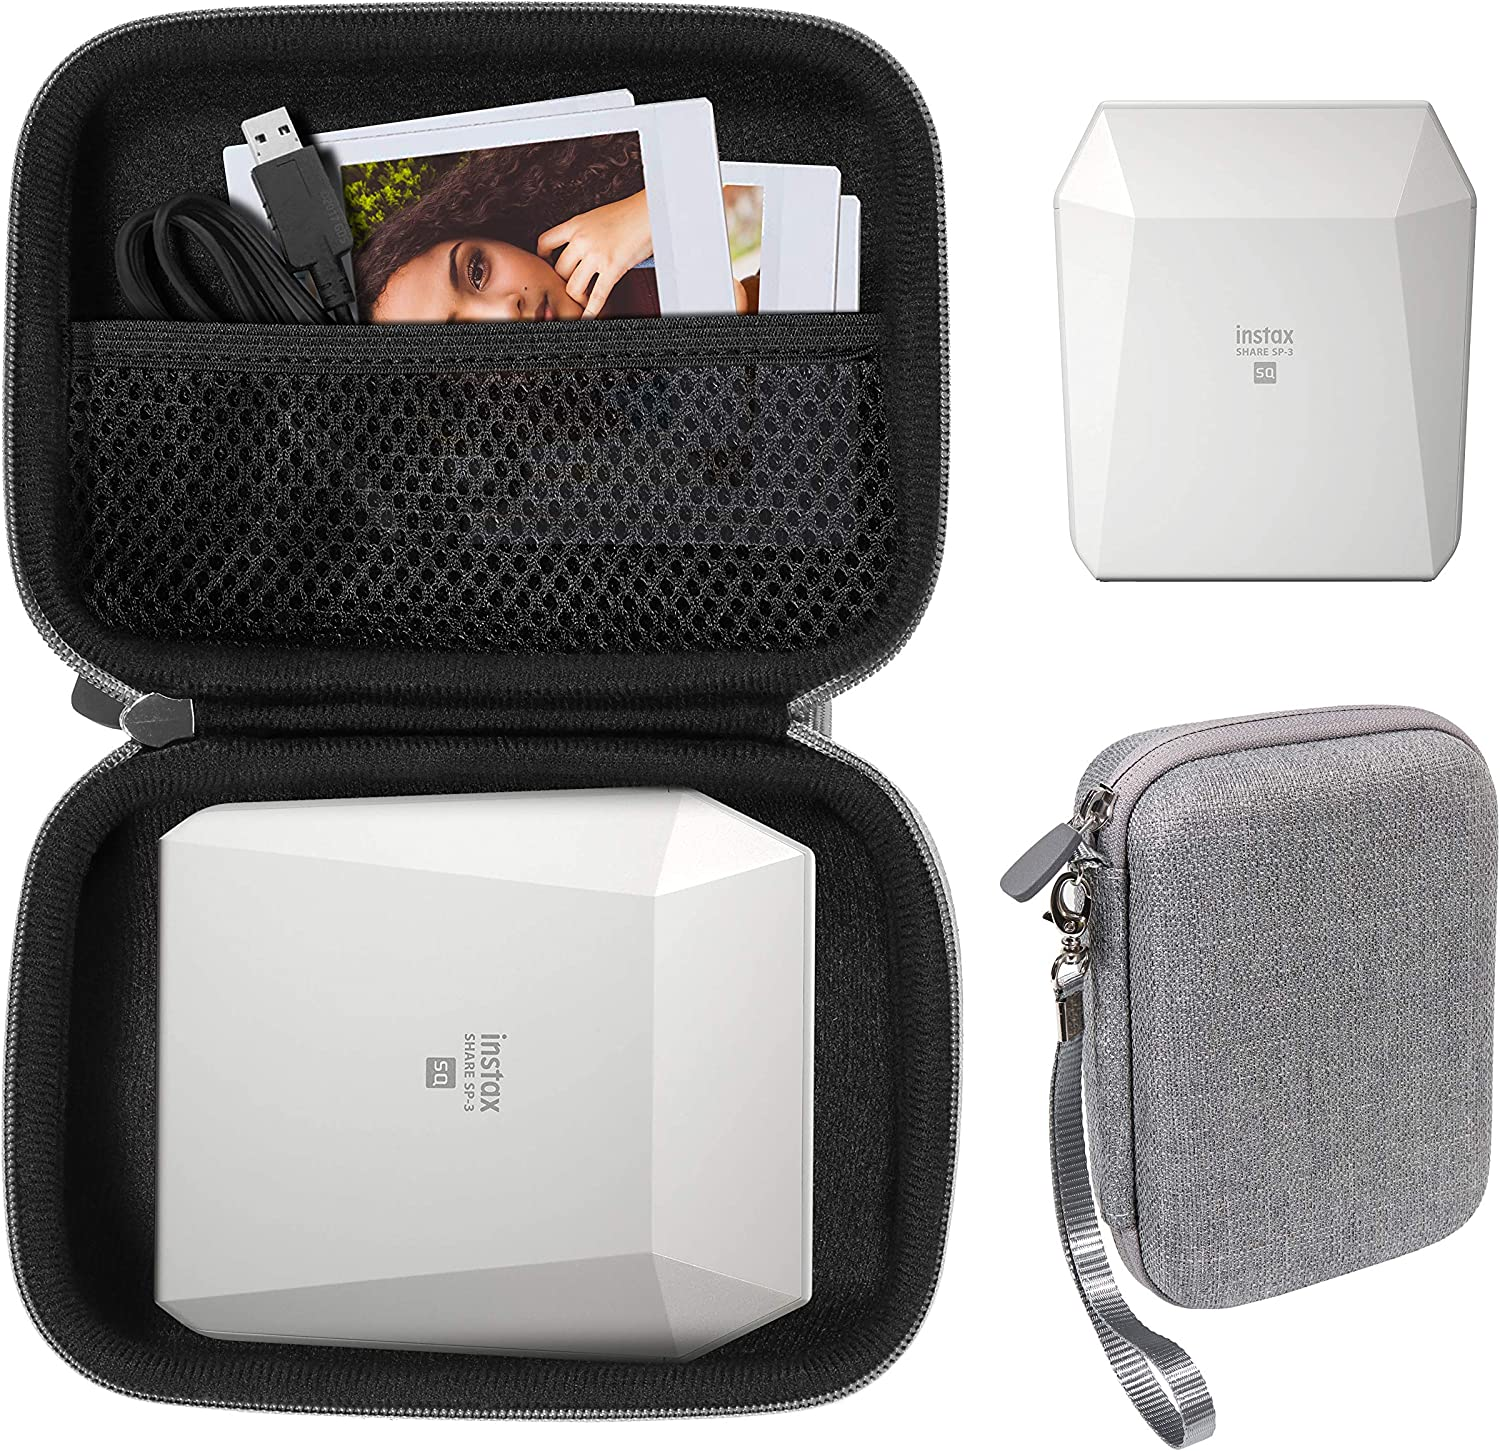 Protective Case for Fujifilm Instax SP-3 Mobile Printer by WGear, Mesh Pocket for Cable and Printing Paper (Tweed Gray)